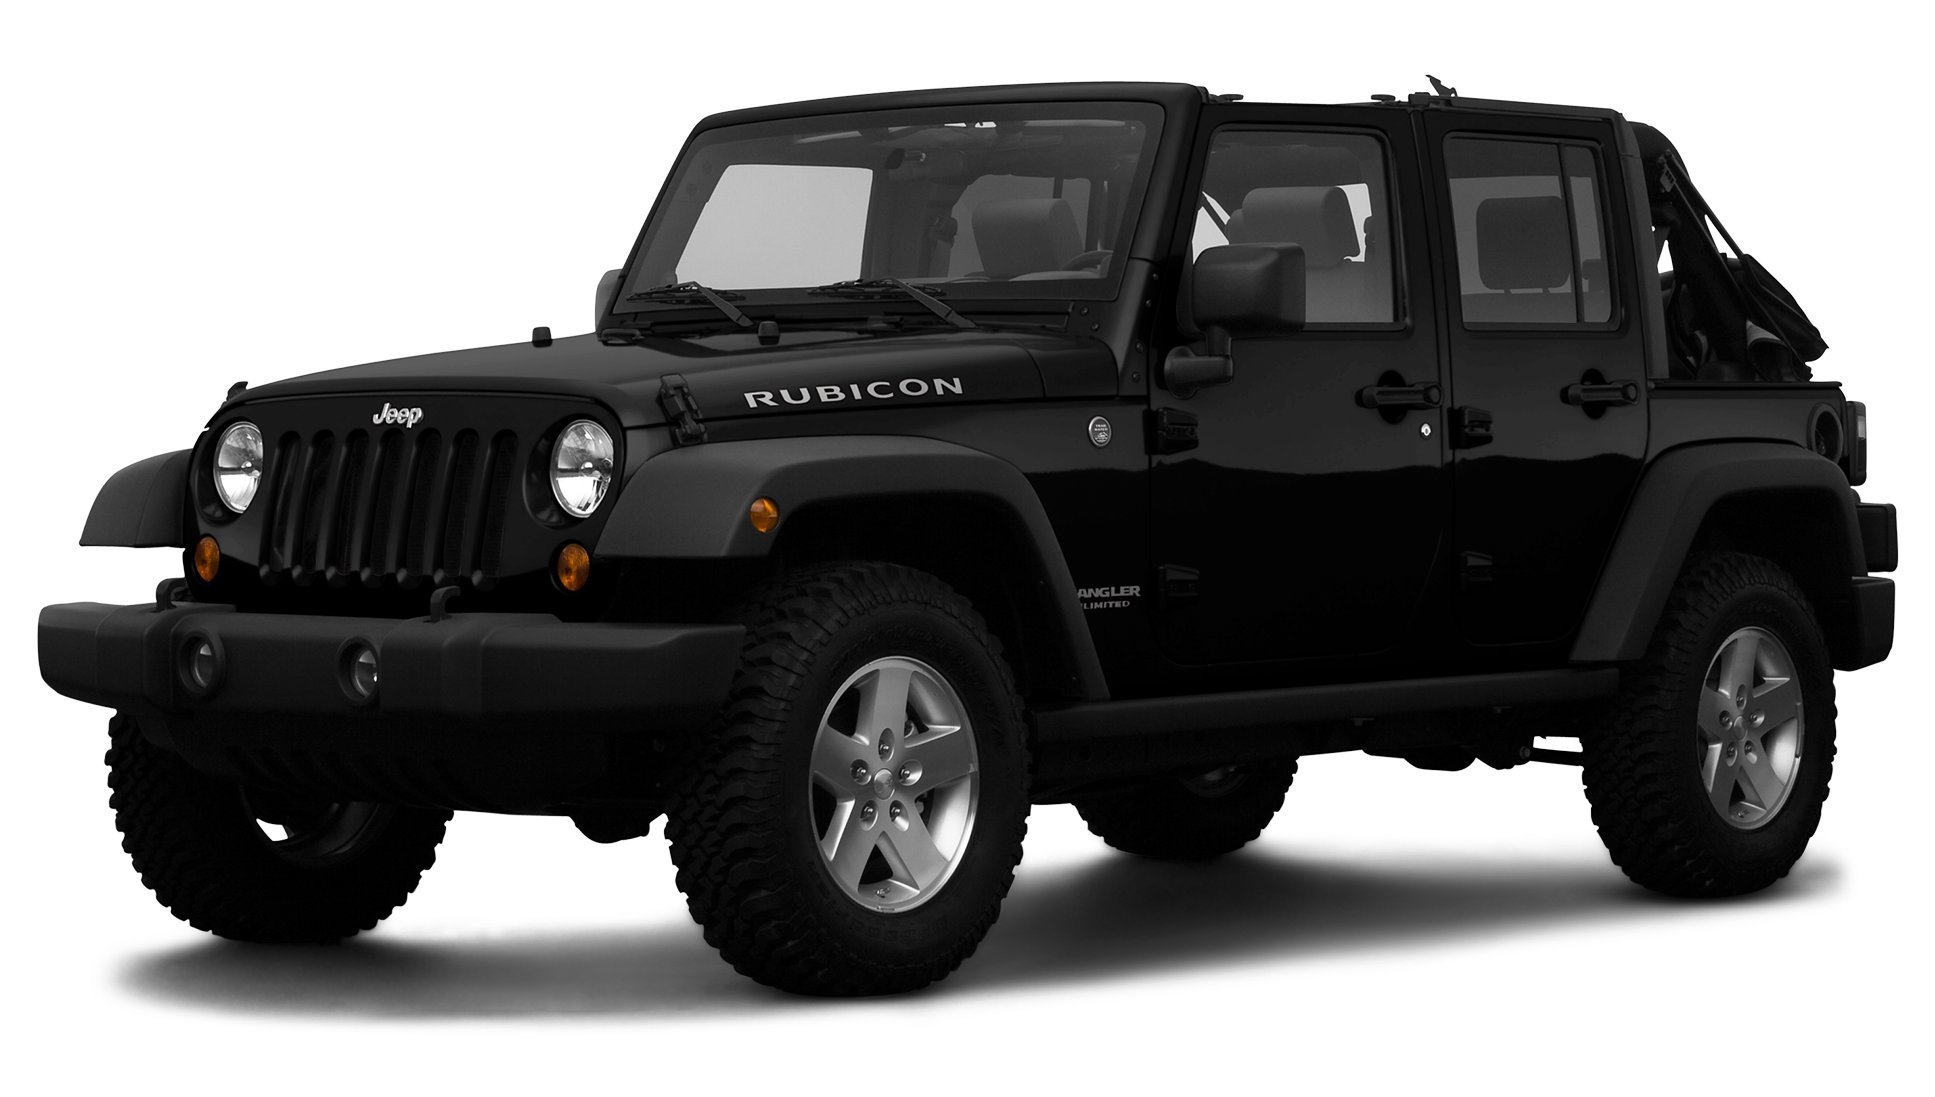 ... Manual Transmission, 2009 Jeep Wrangler Rubicon, 4-Wheel Drive 4-Door